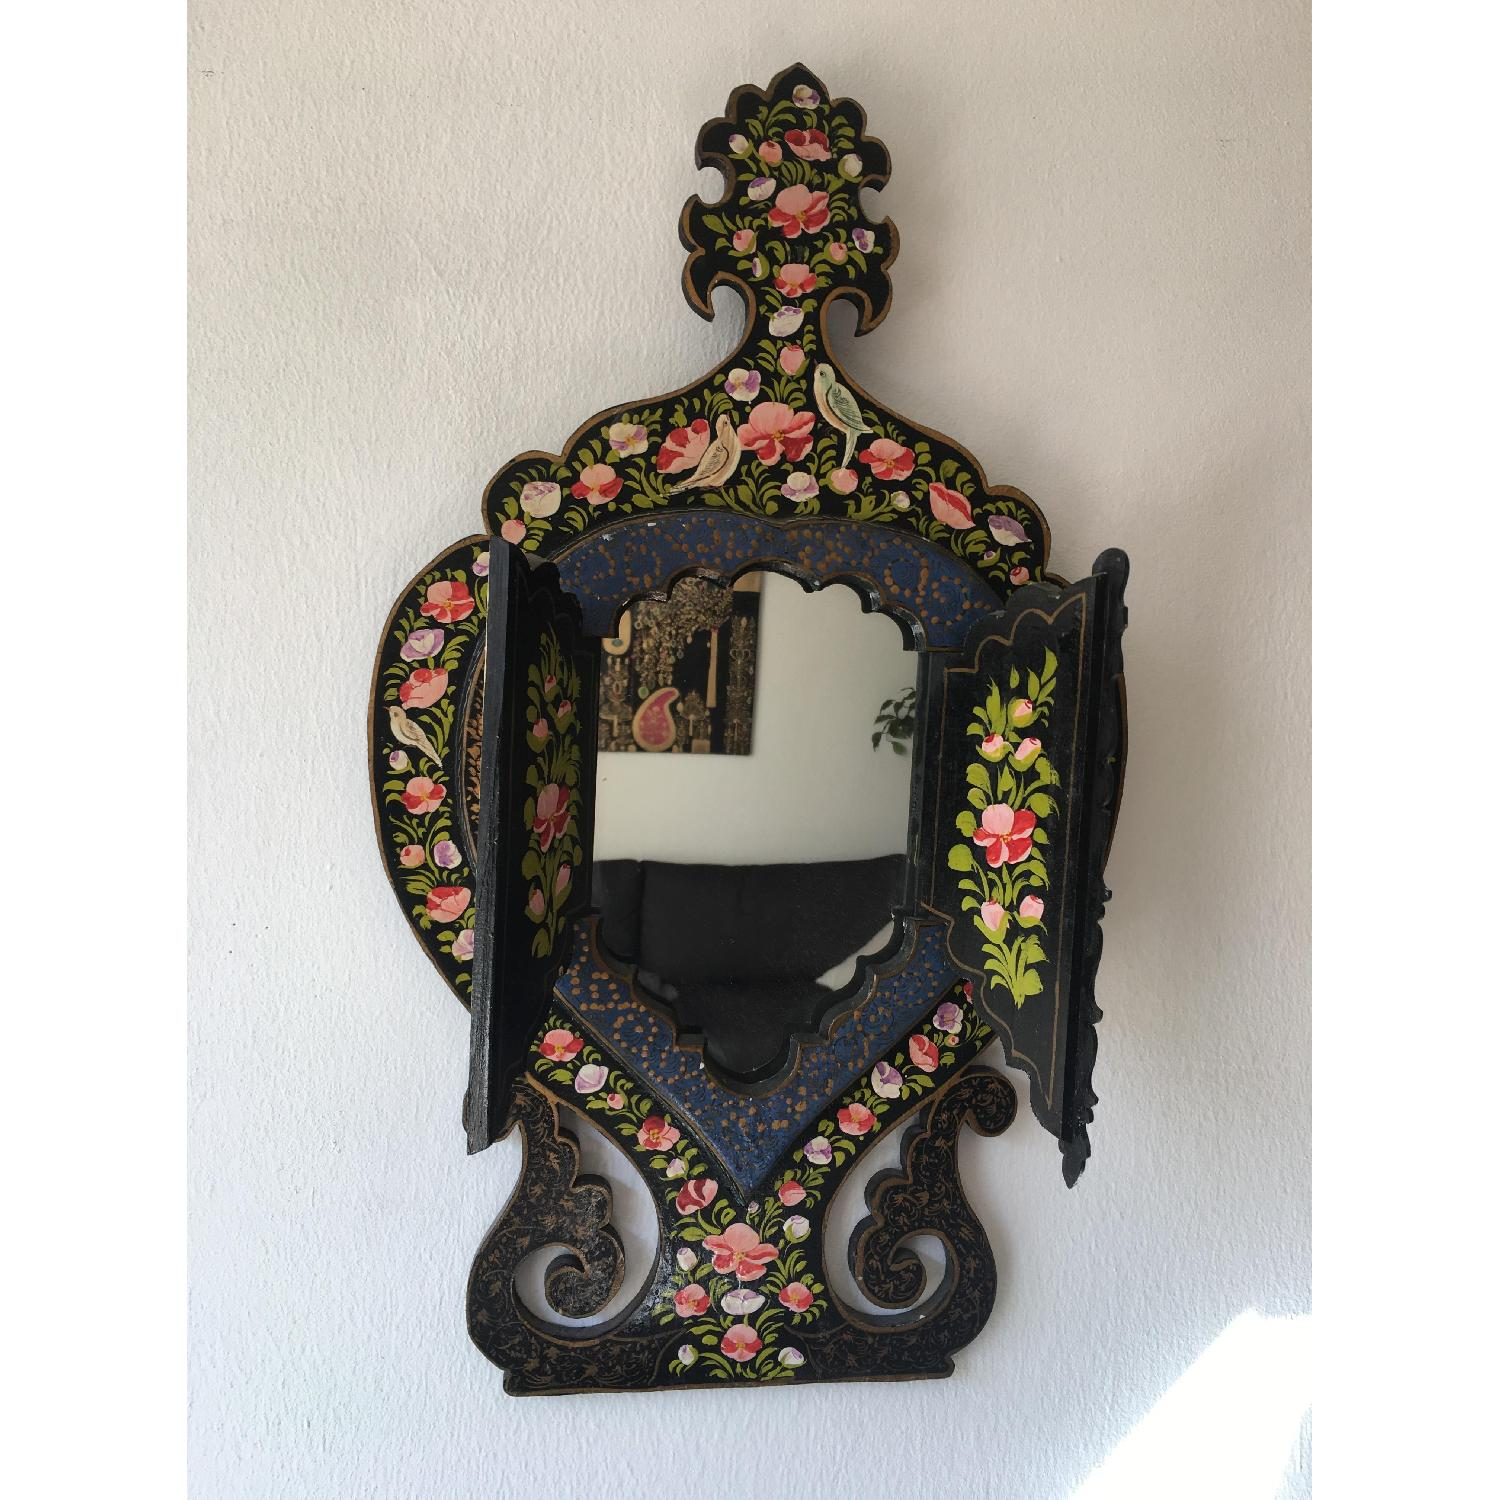 Antique Small Hand Painted Wooden Persian Mirror Frame - image-1